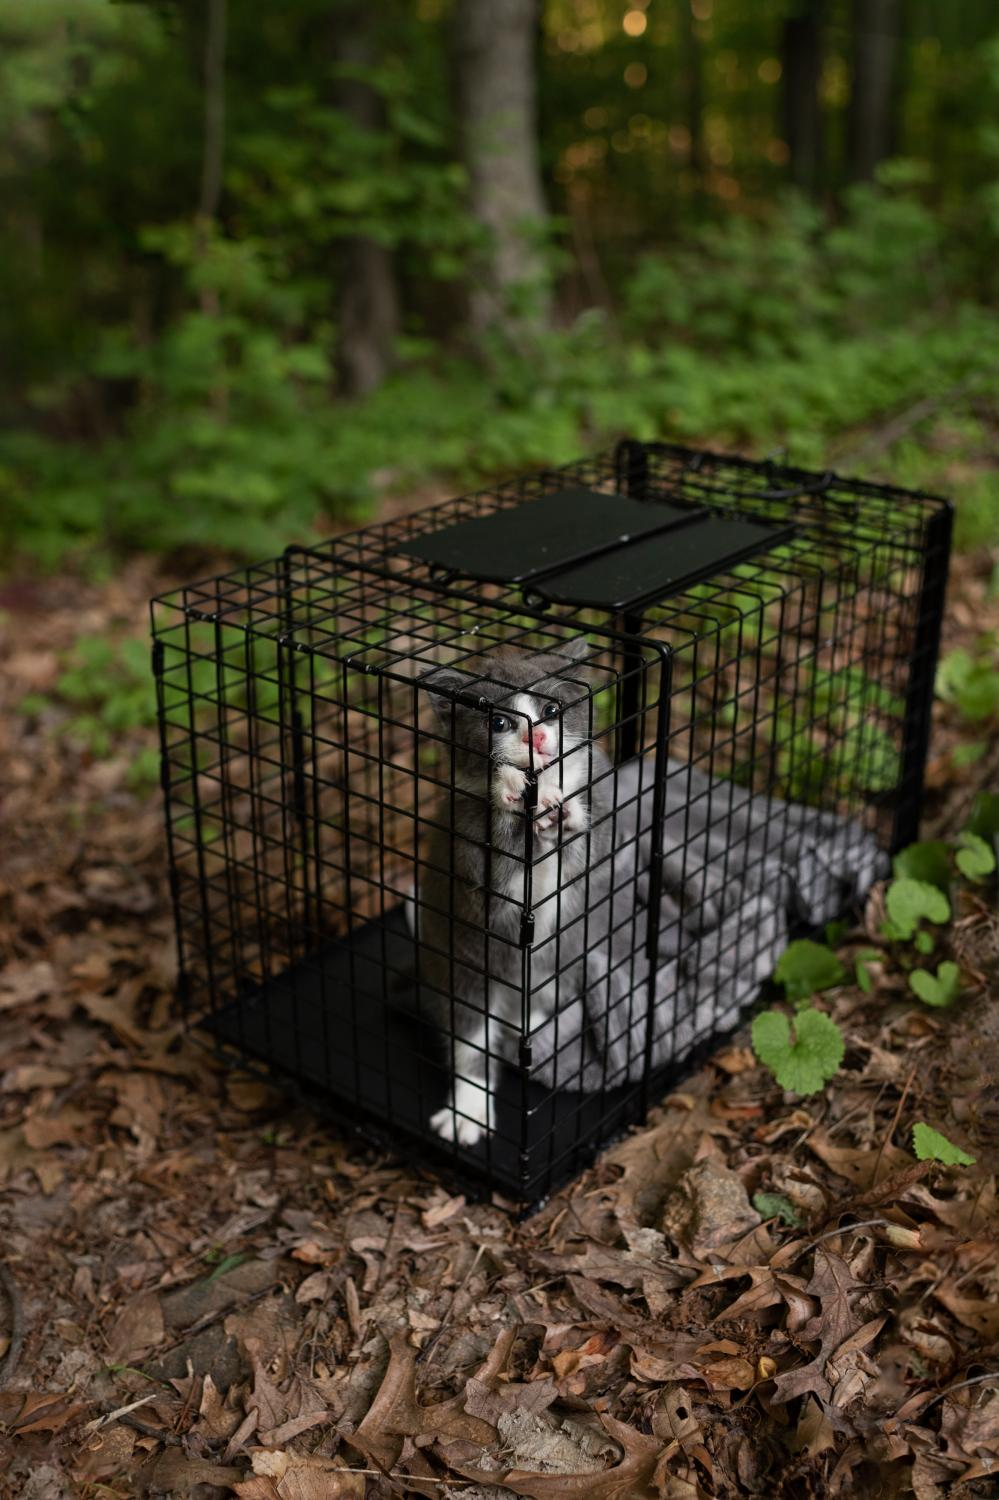 A captured feral kitten will be vetted and put up for adoption.